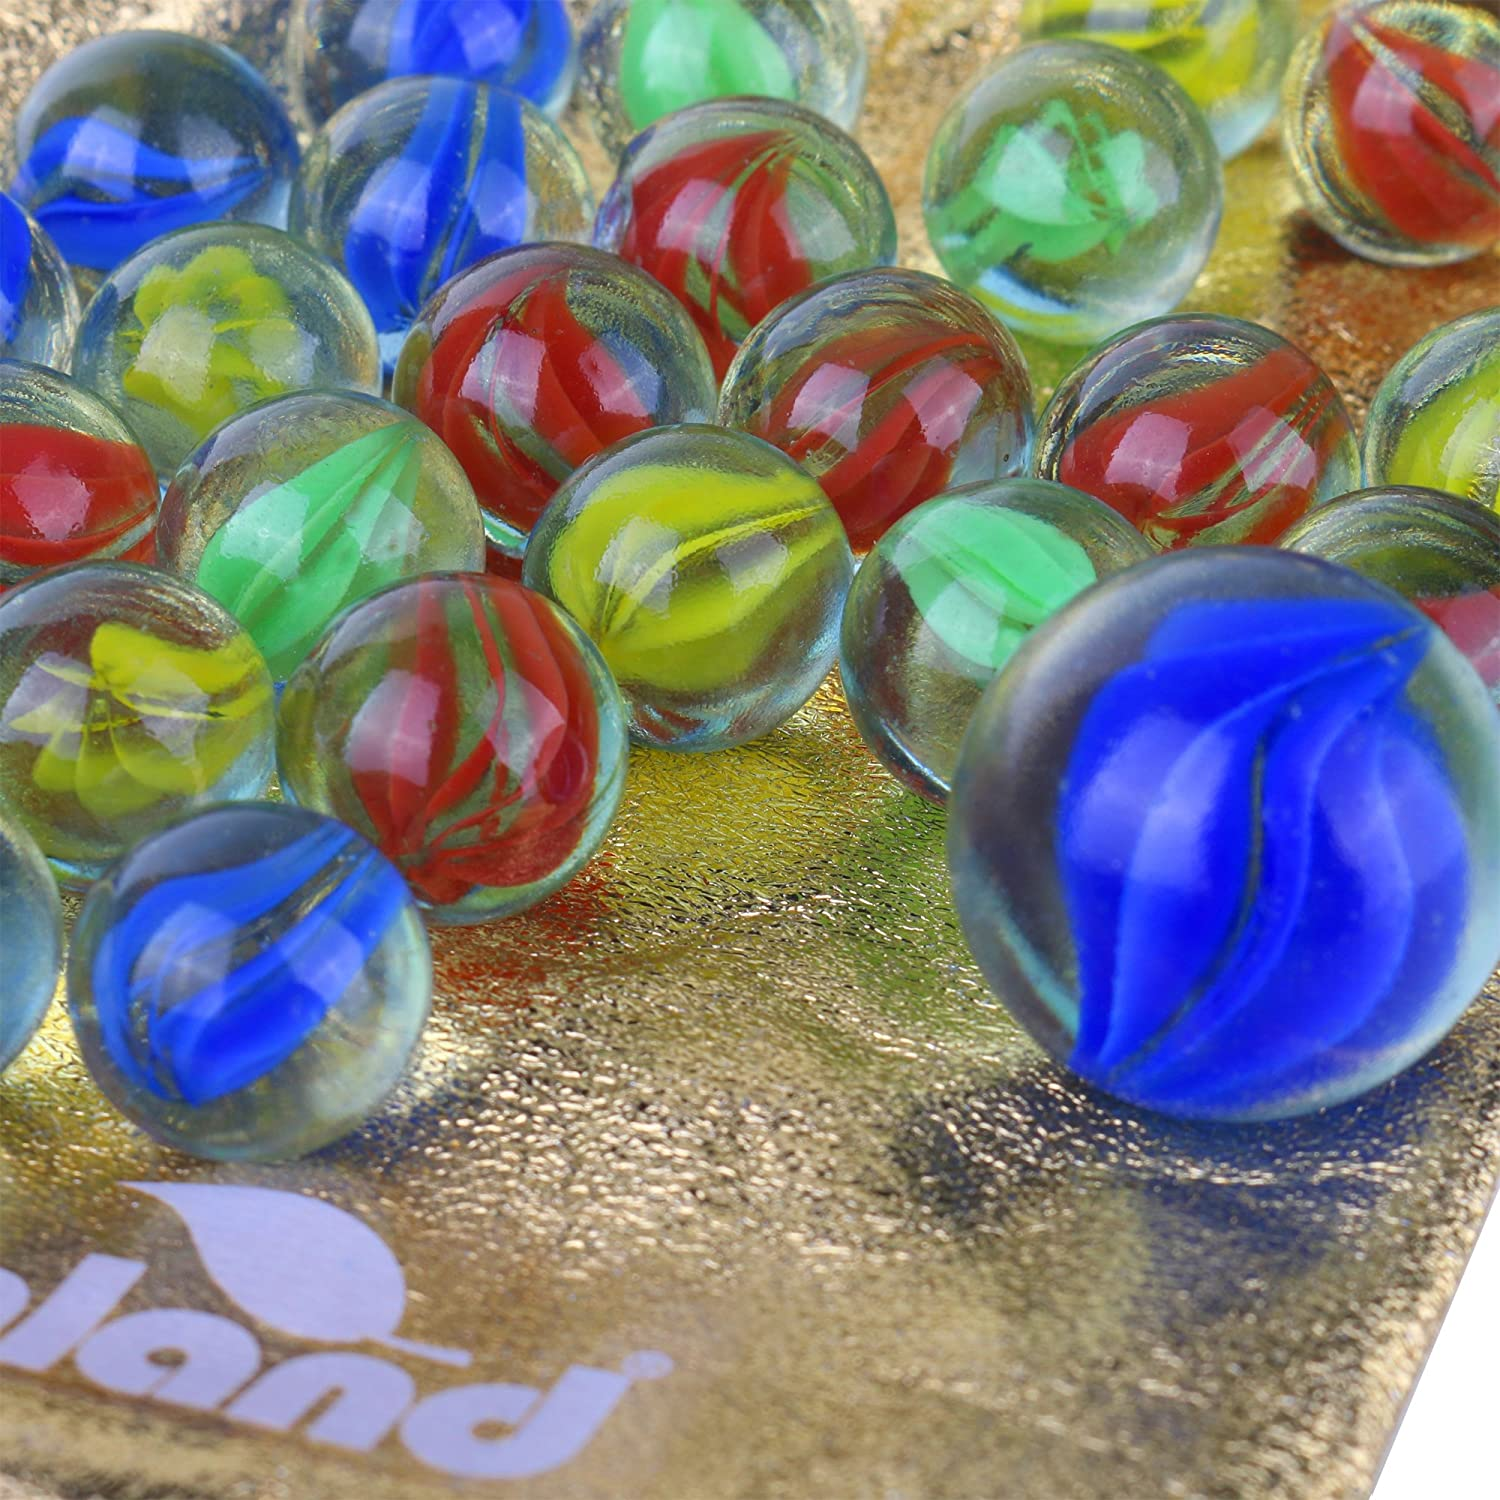 Mega Assortment of 40 Marbles Large Pack of 40 Marbles with a Free Bonus Shooter Marble Comes in a Velour Flocked Bag with Double Cord Drawstring Replacement Marbles for Marble Run Games